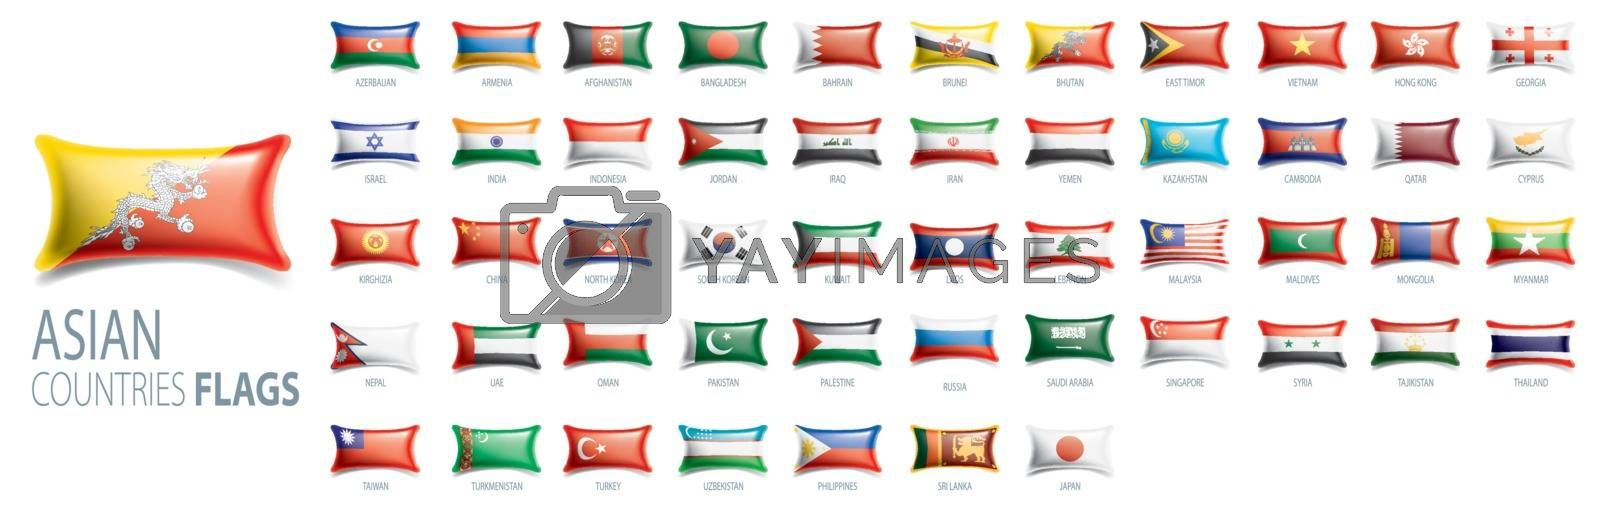 National flags of Asian countries. Vector illustrations.